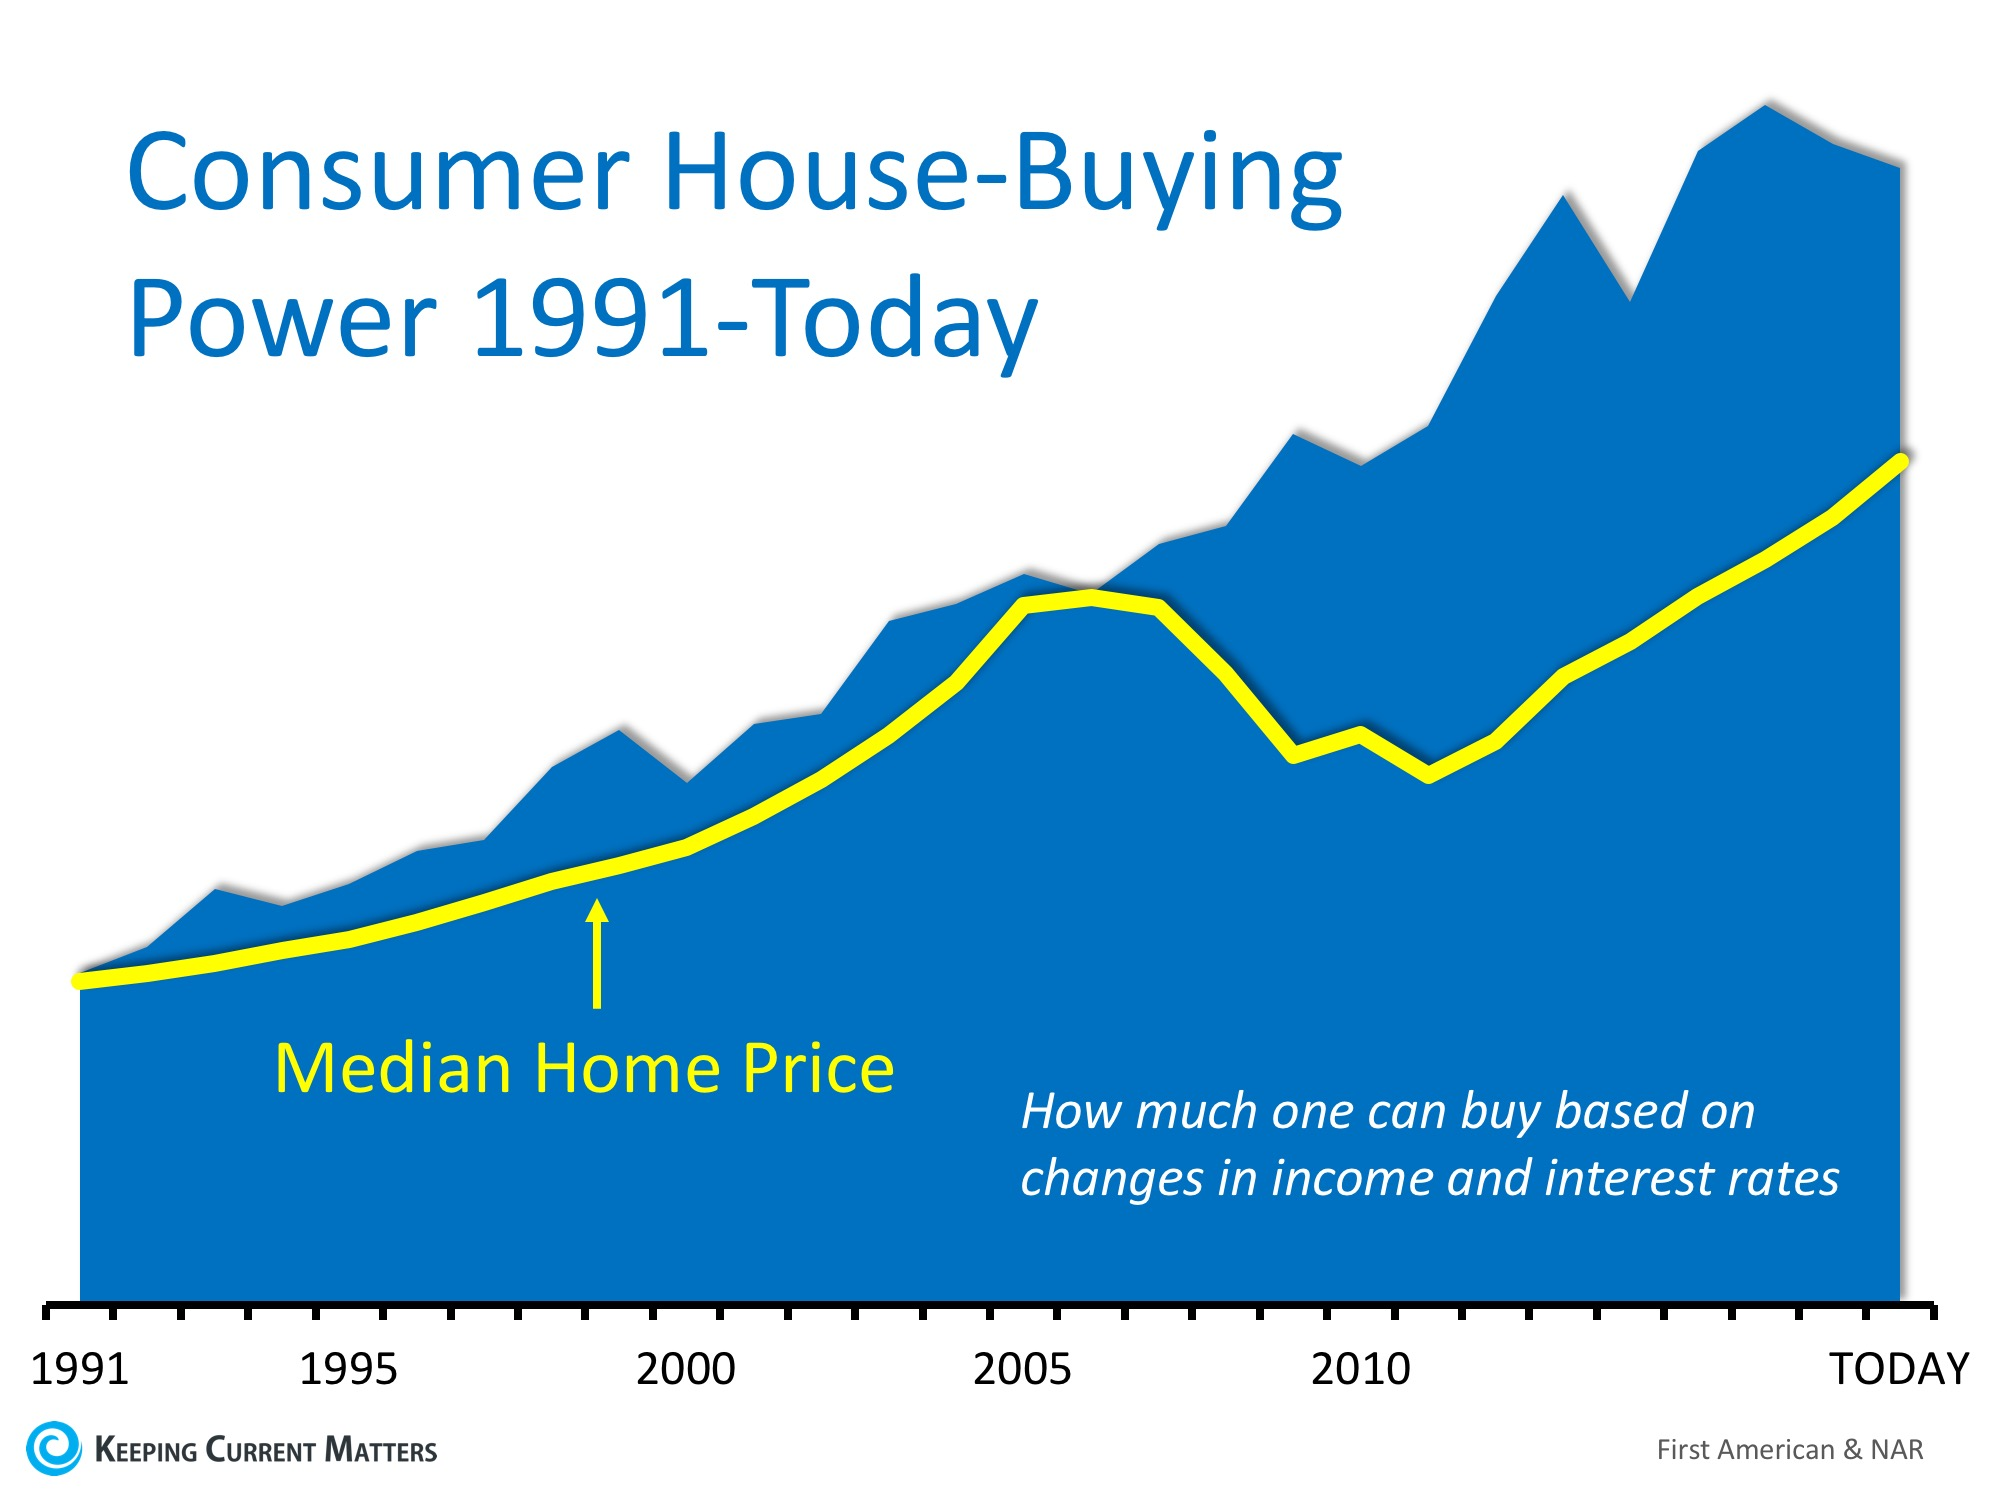 House-Buying Power at Near-Historic Levels  Keeping Current Matters